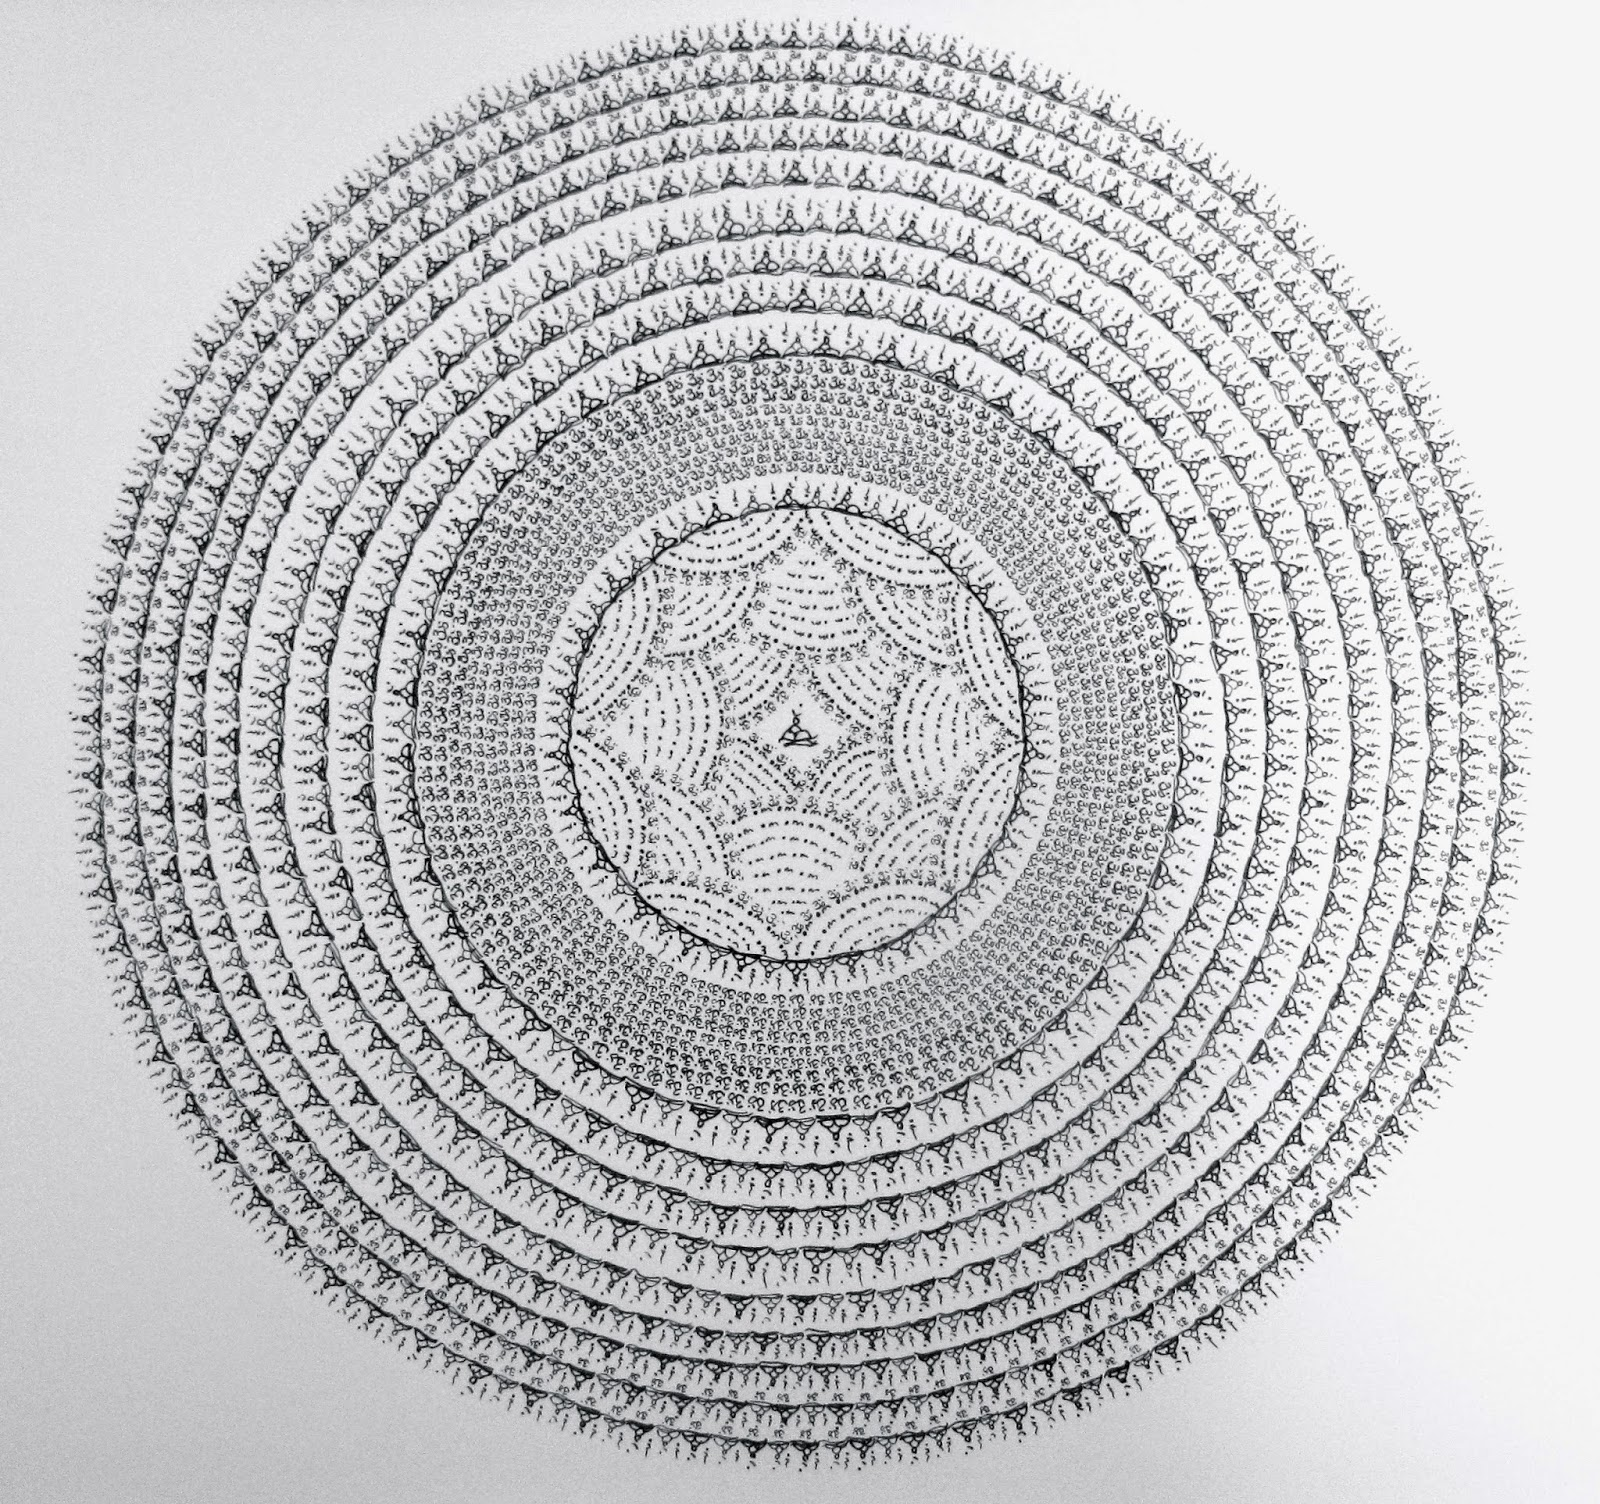 http://jqgaines.wordpress.com/category/likhita-japa-mandalas/